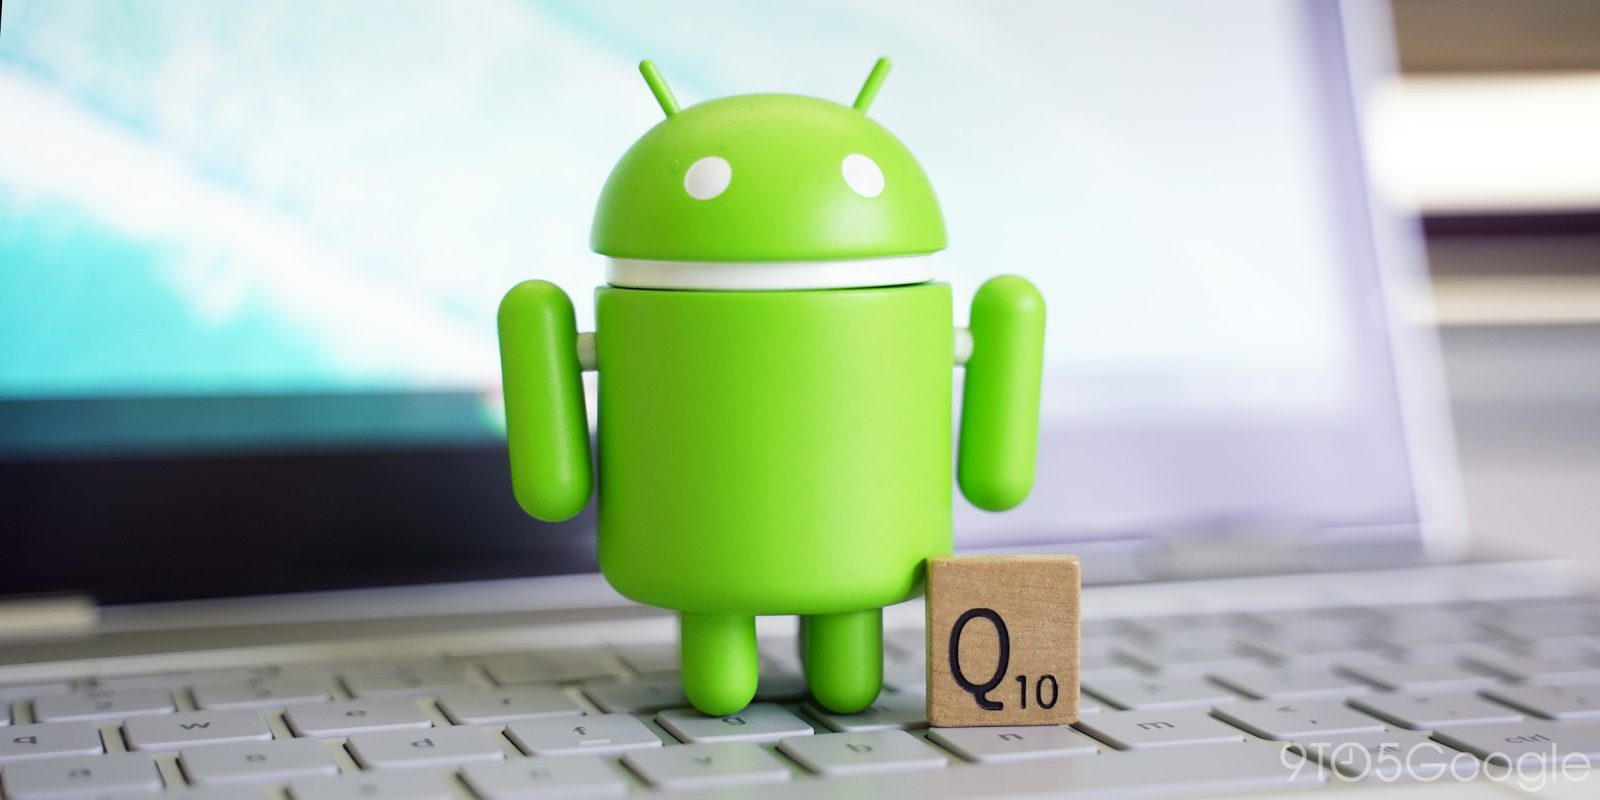 Project Mainline' gives Google more control over Android